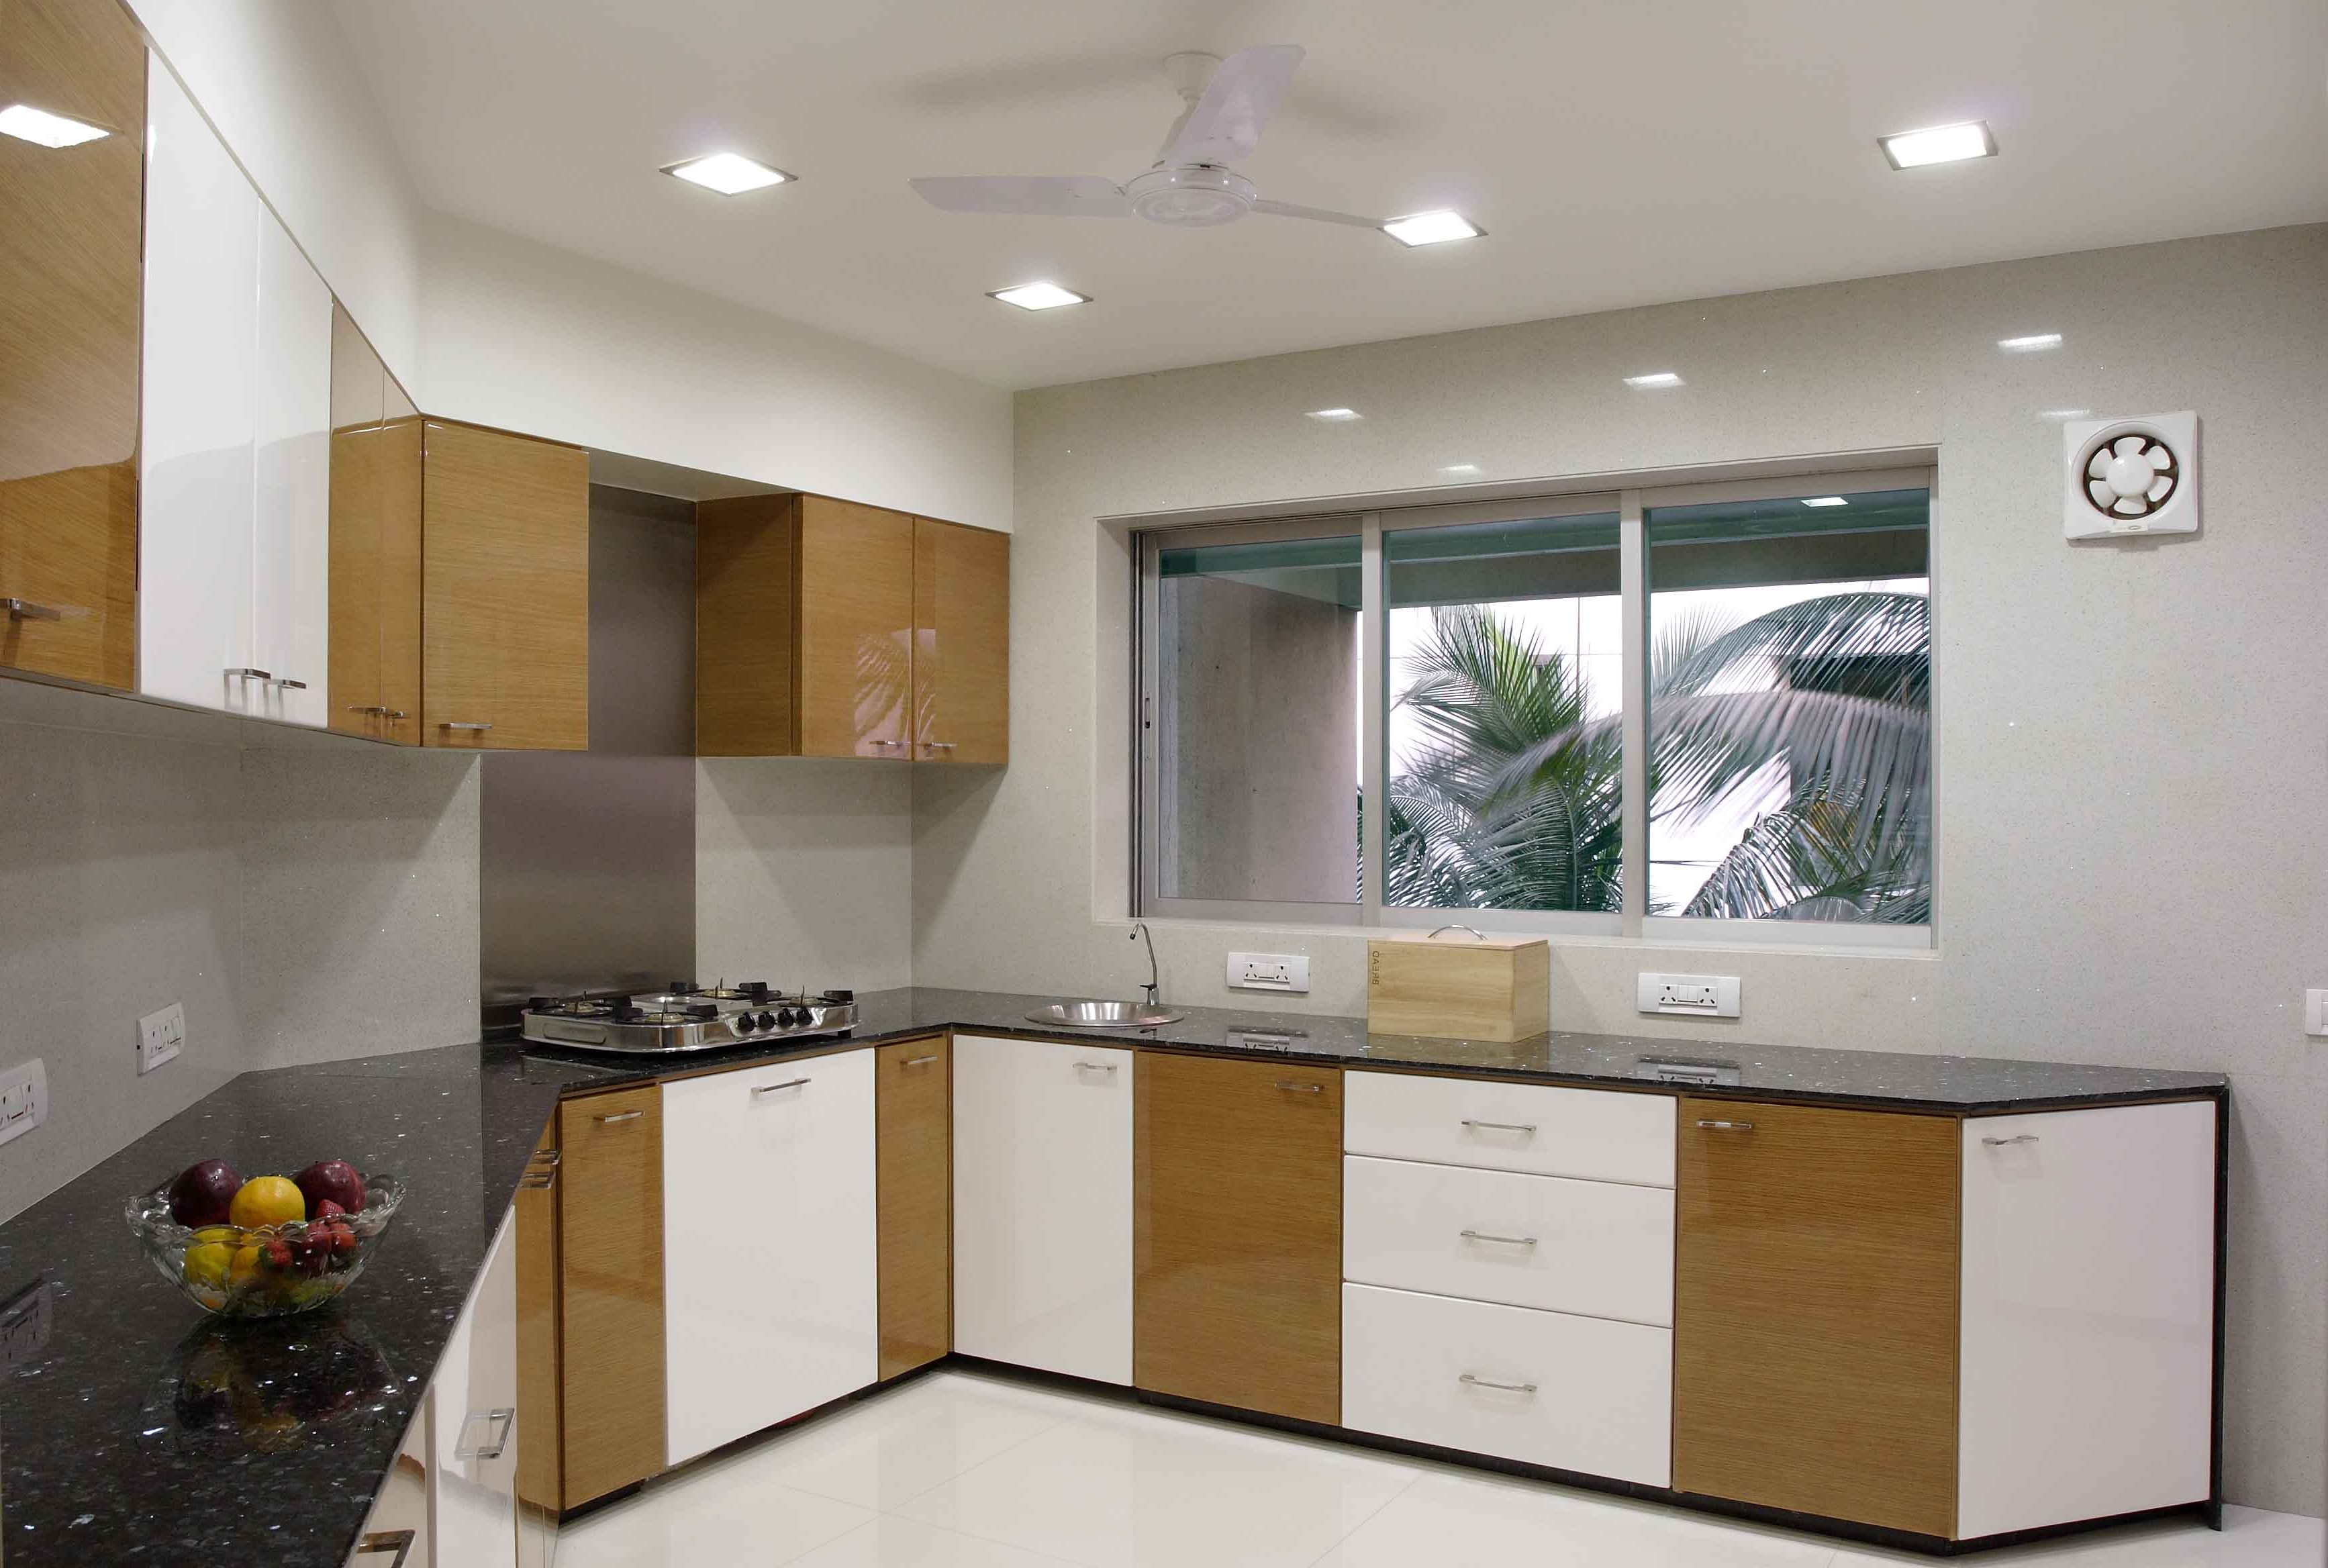 The Small Kitchen Is An Example Of Perfect Use Of Small Spaces To Design A  Couple. The Half Quadrilateral Shape Of The Kitchen Looks Perfect When You  Are ... Part 65